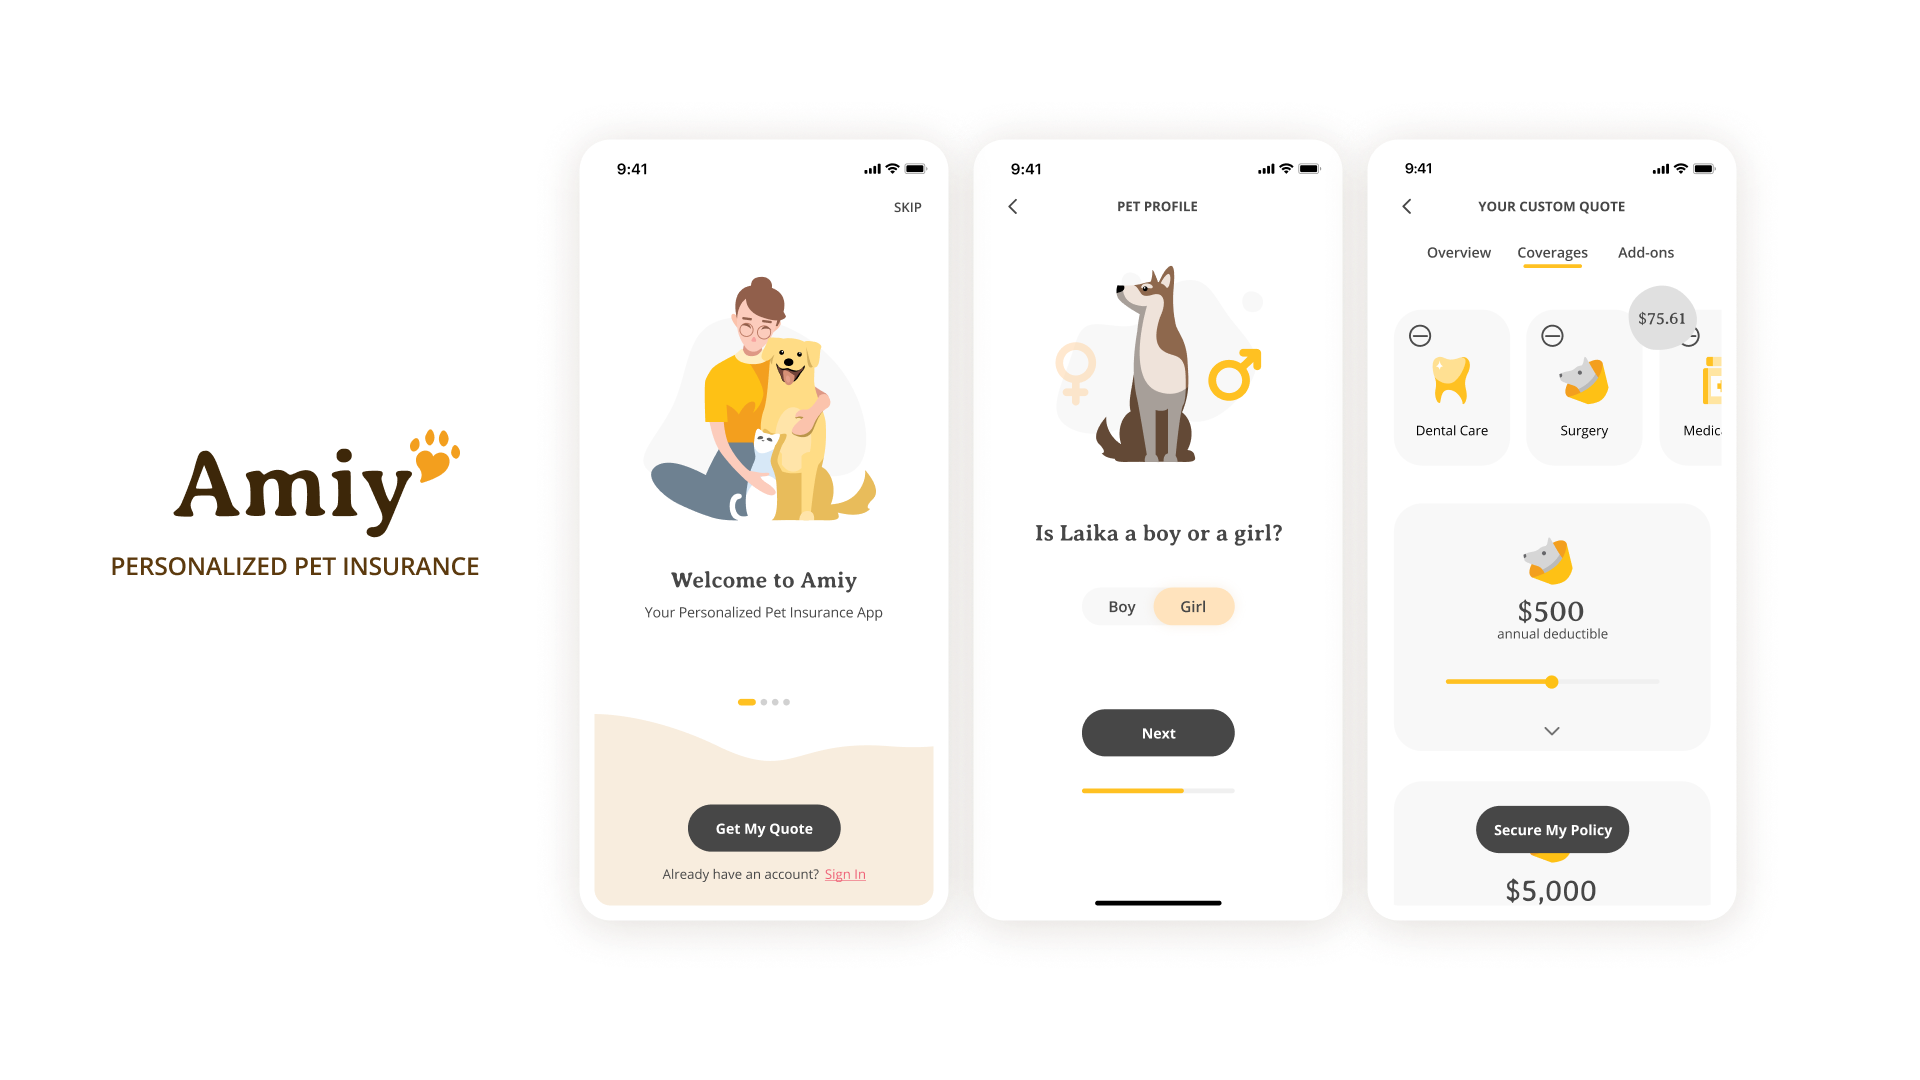 Preview to the Amiy app, showing (from left to right) the logo, welcome screen, onboarding screen, and insurance policy customization page